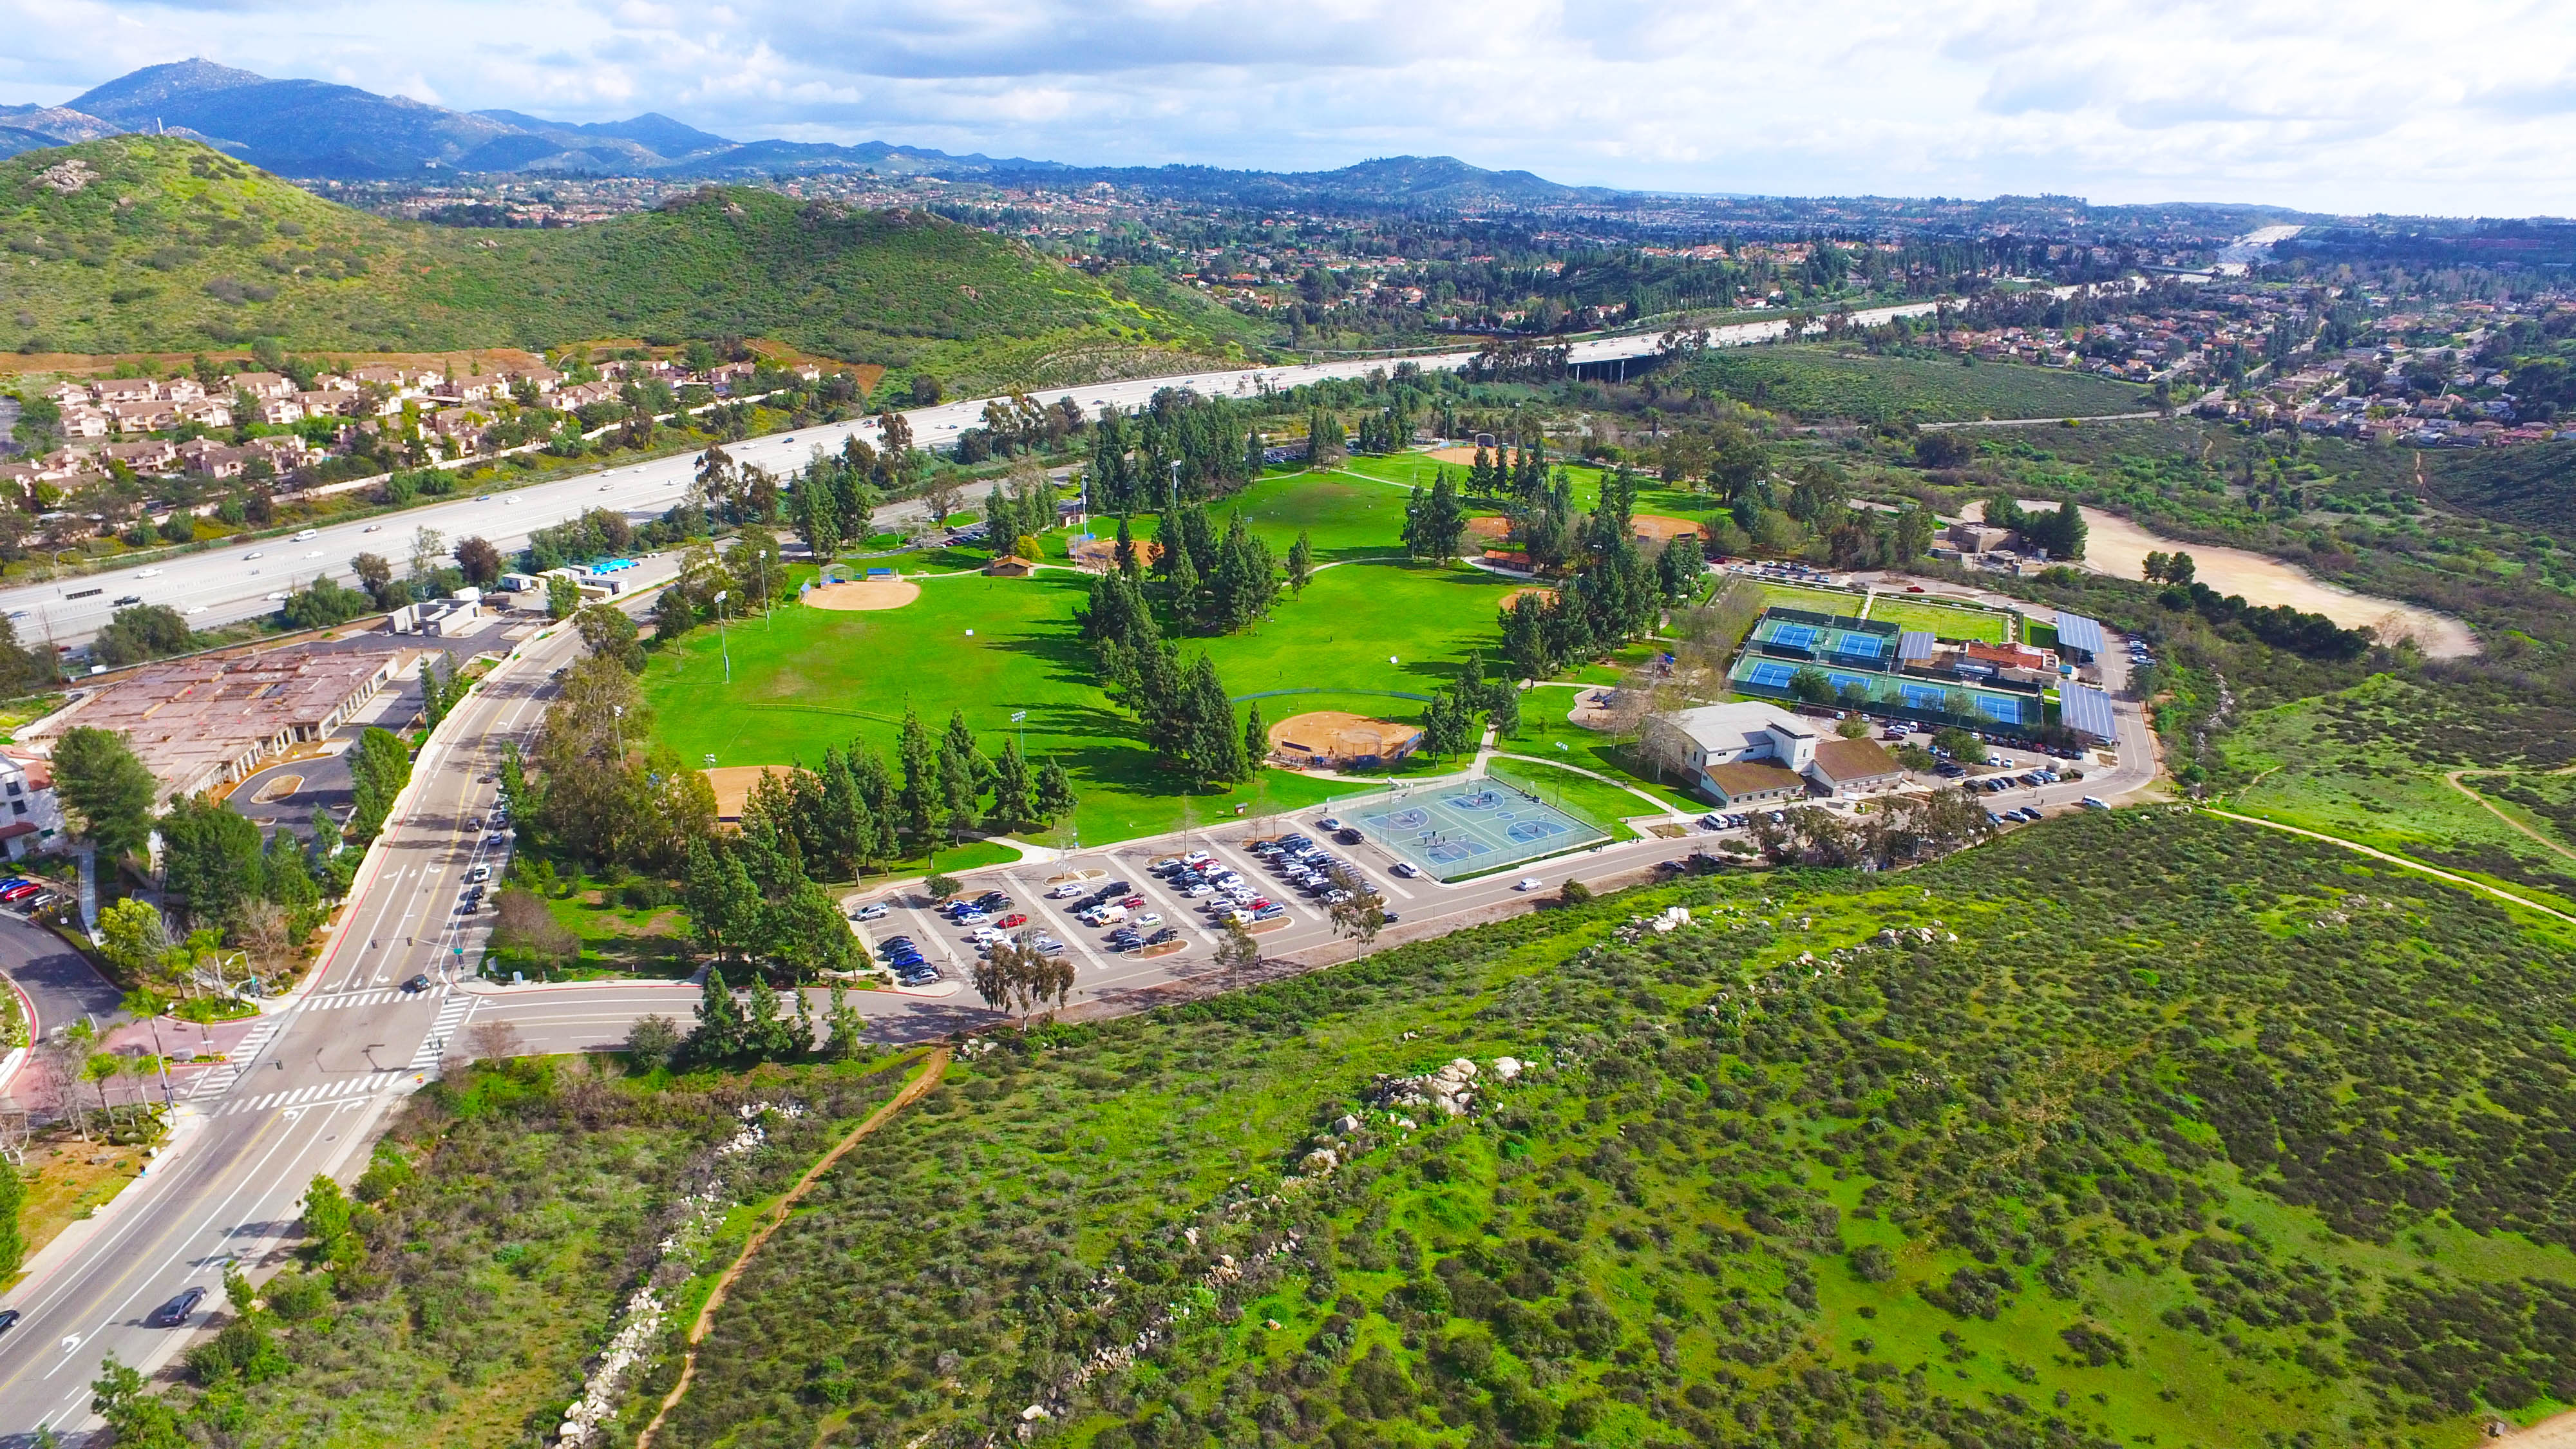 Park in San Diego California Aerial Photography